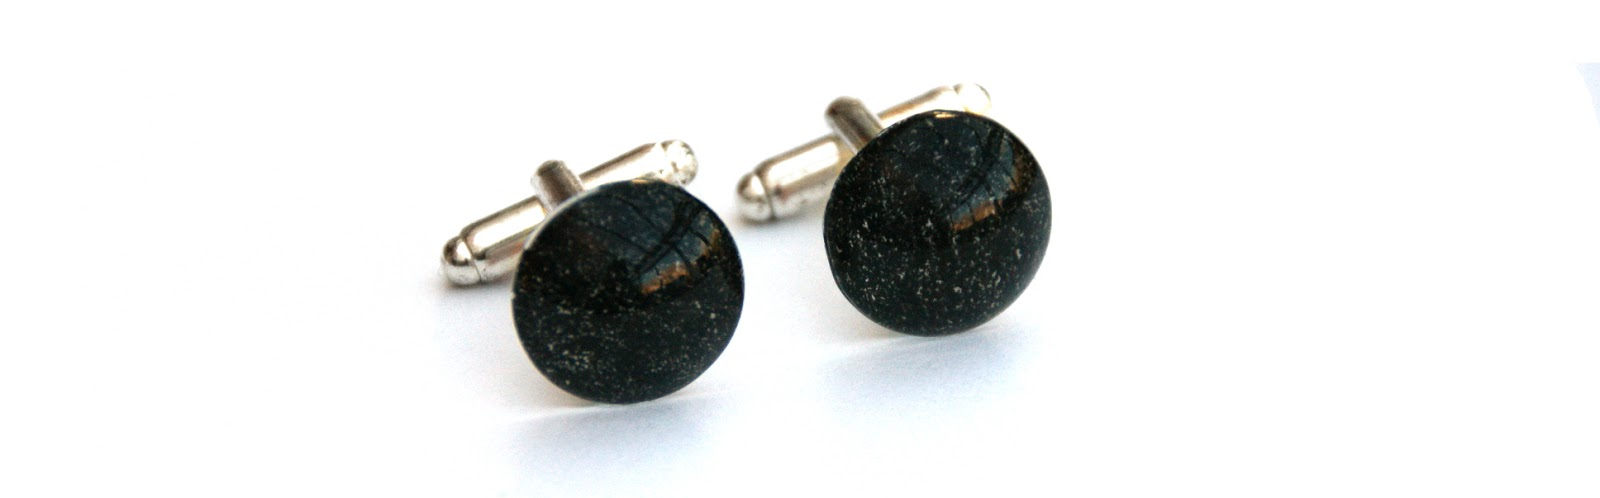 https://www.etsy.com/uk/listing/178922395/black-cufflinks-unisex-fathers-day